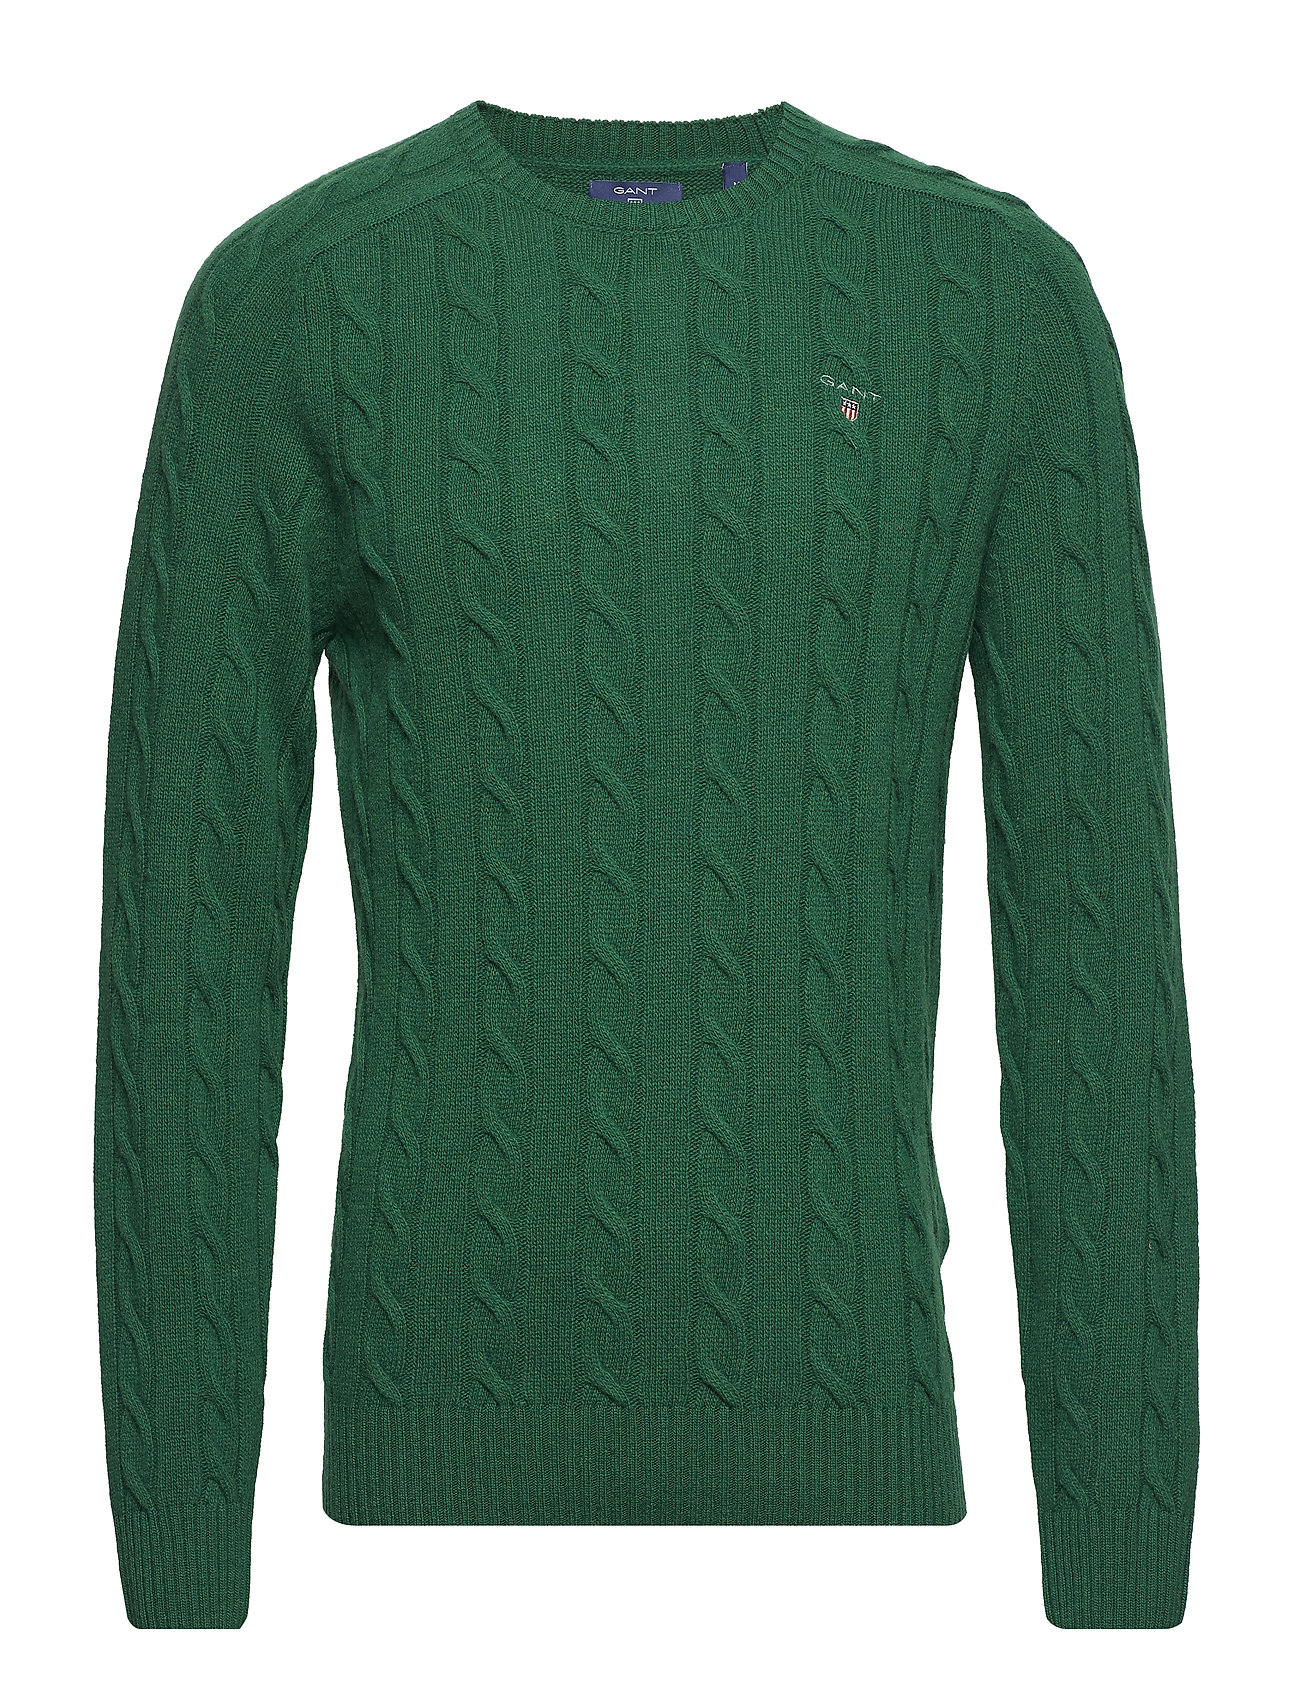 GANT O3. LAMBSWOOL CABLE CREW - IVY GREEN